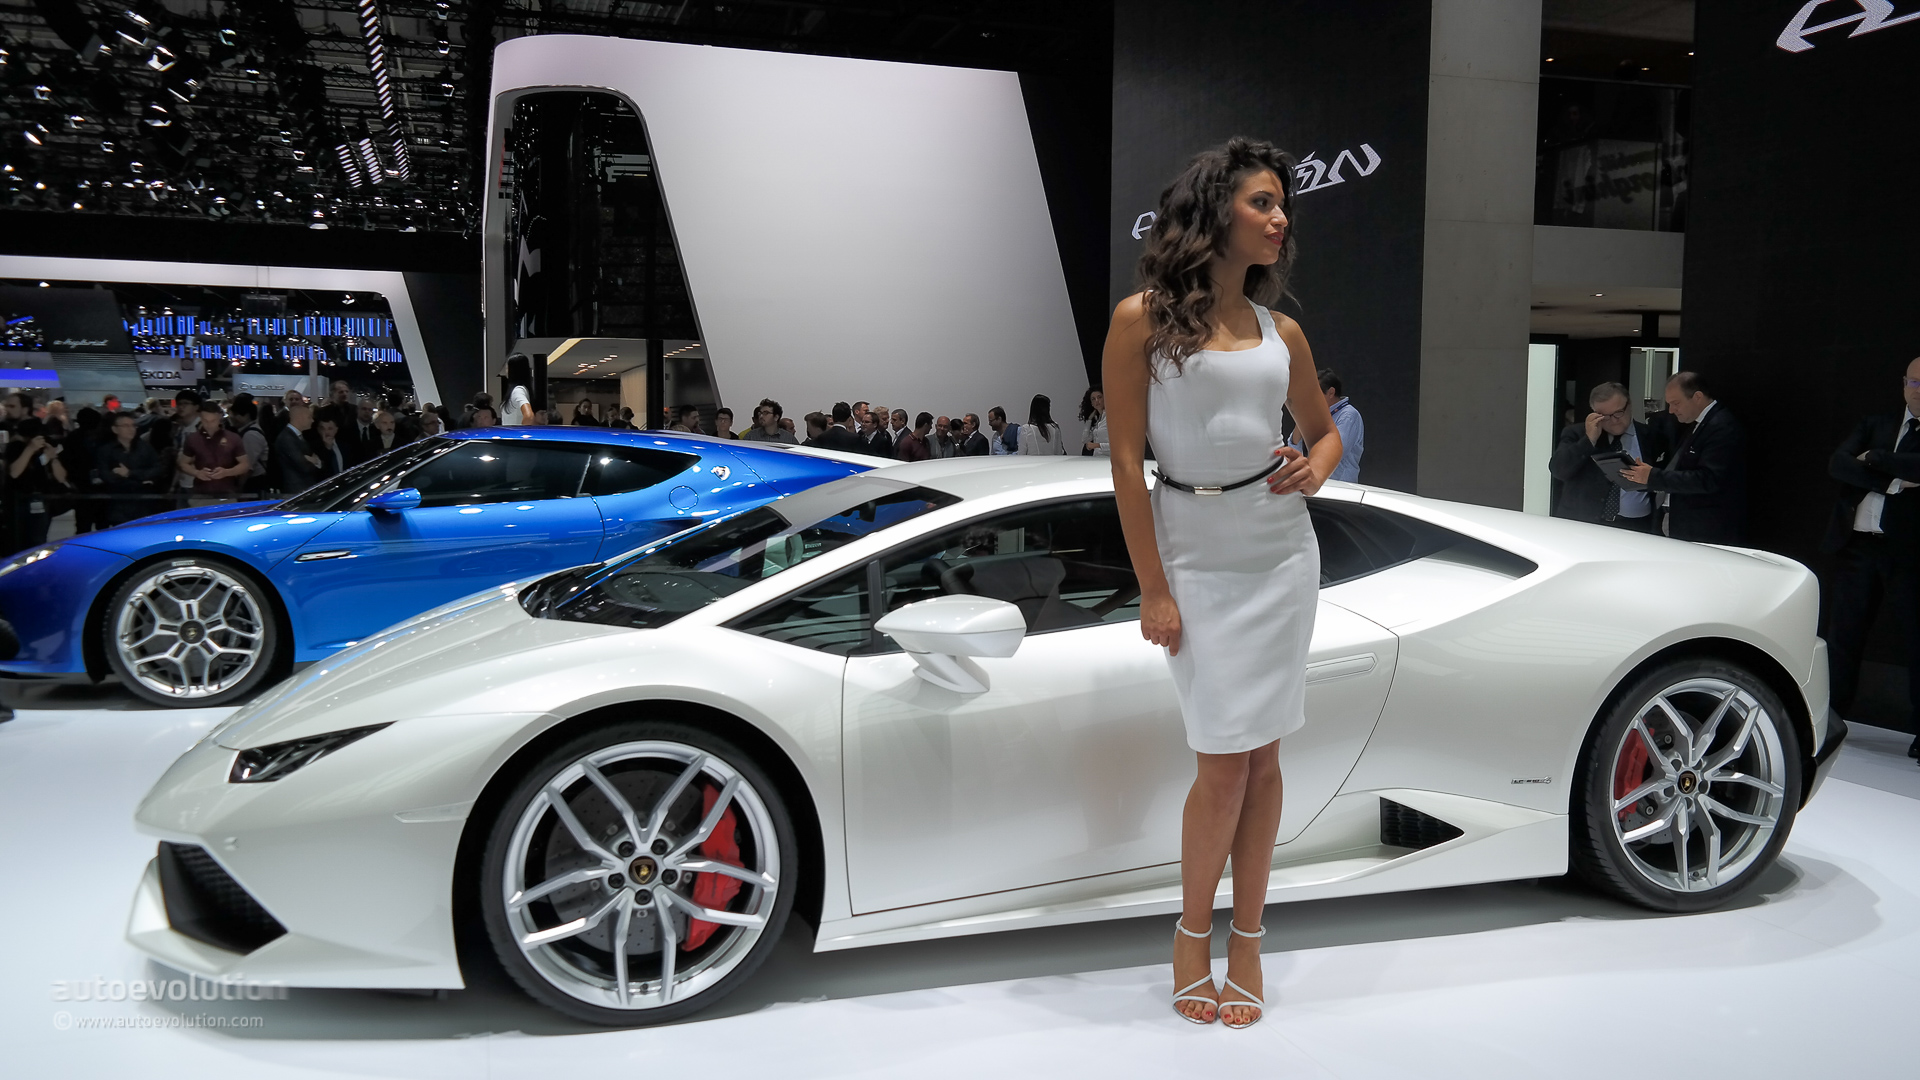 Paris car show pictures